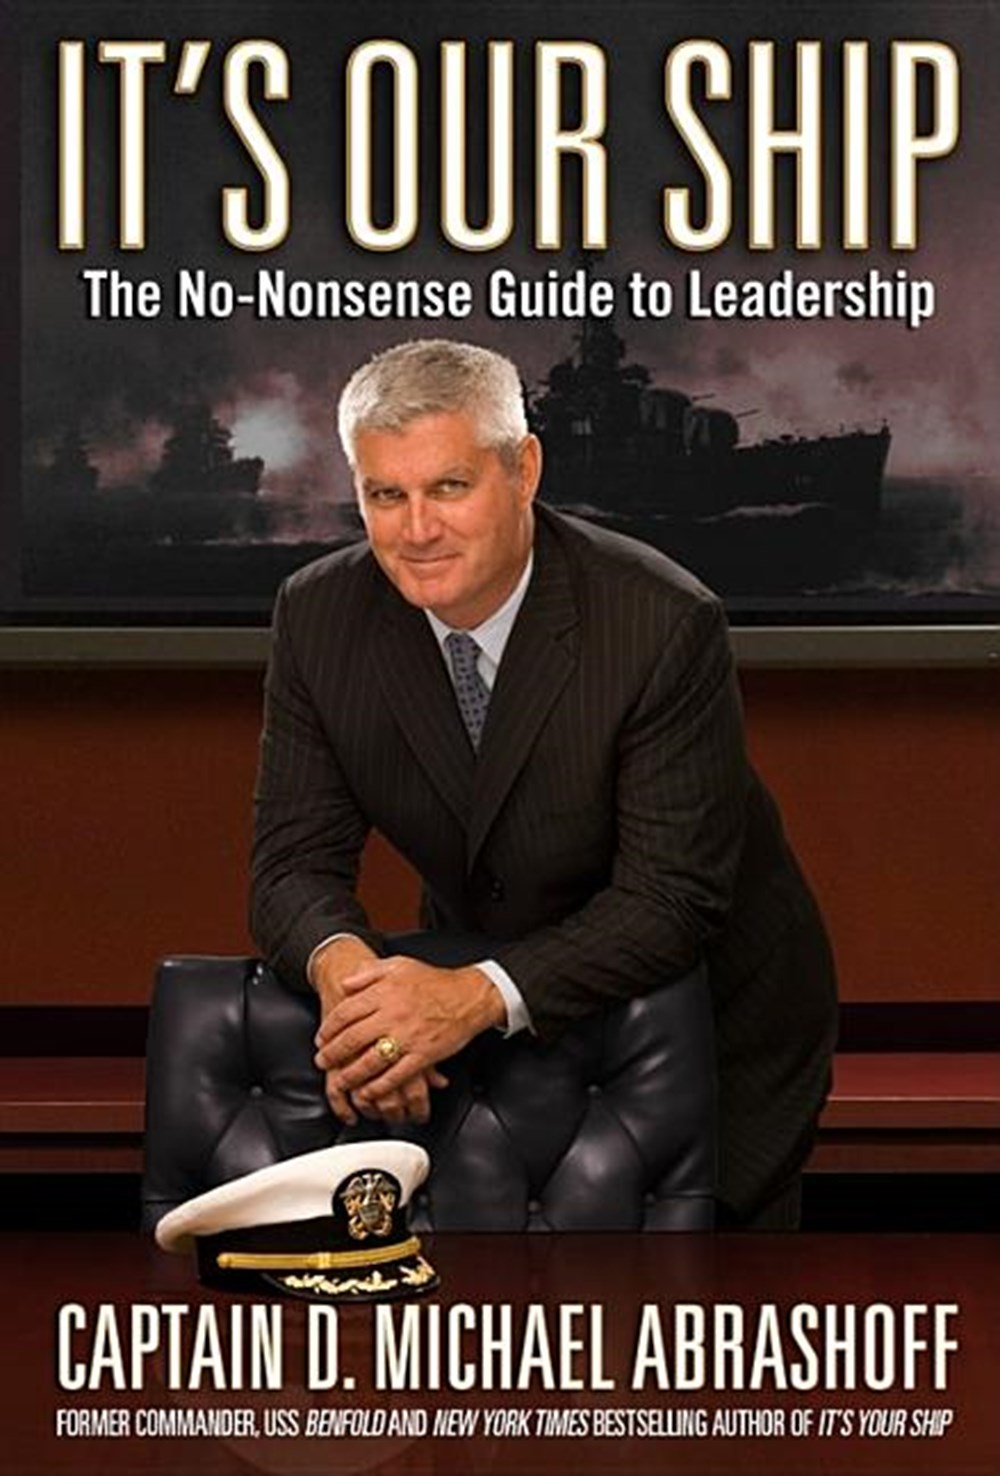 It's Our Ship The No-Nonsense Guide to Leadership